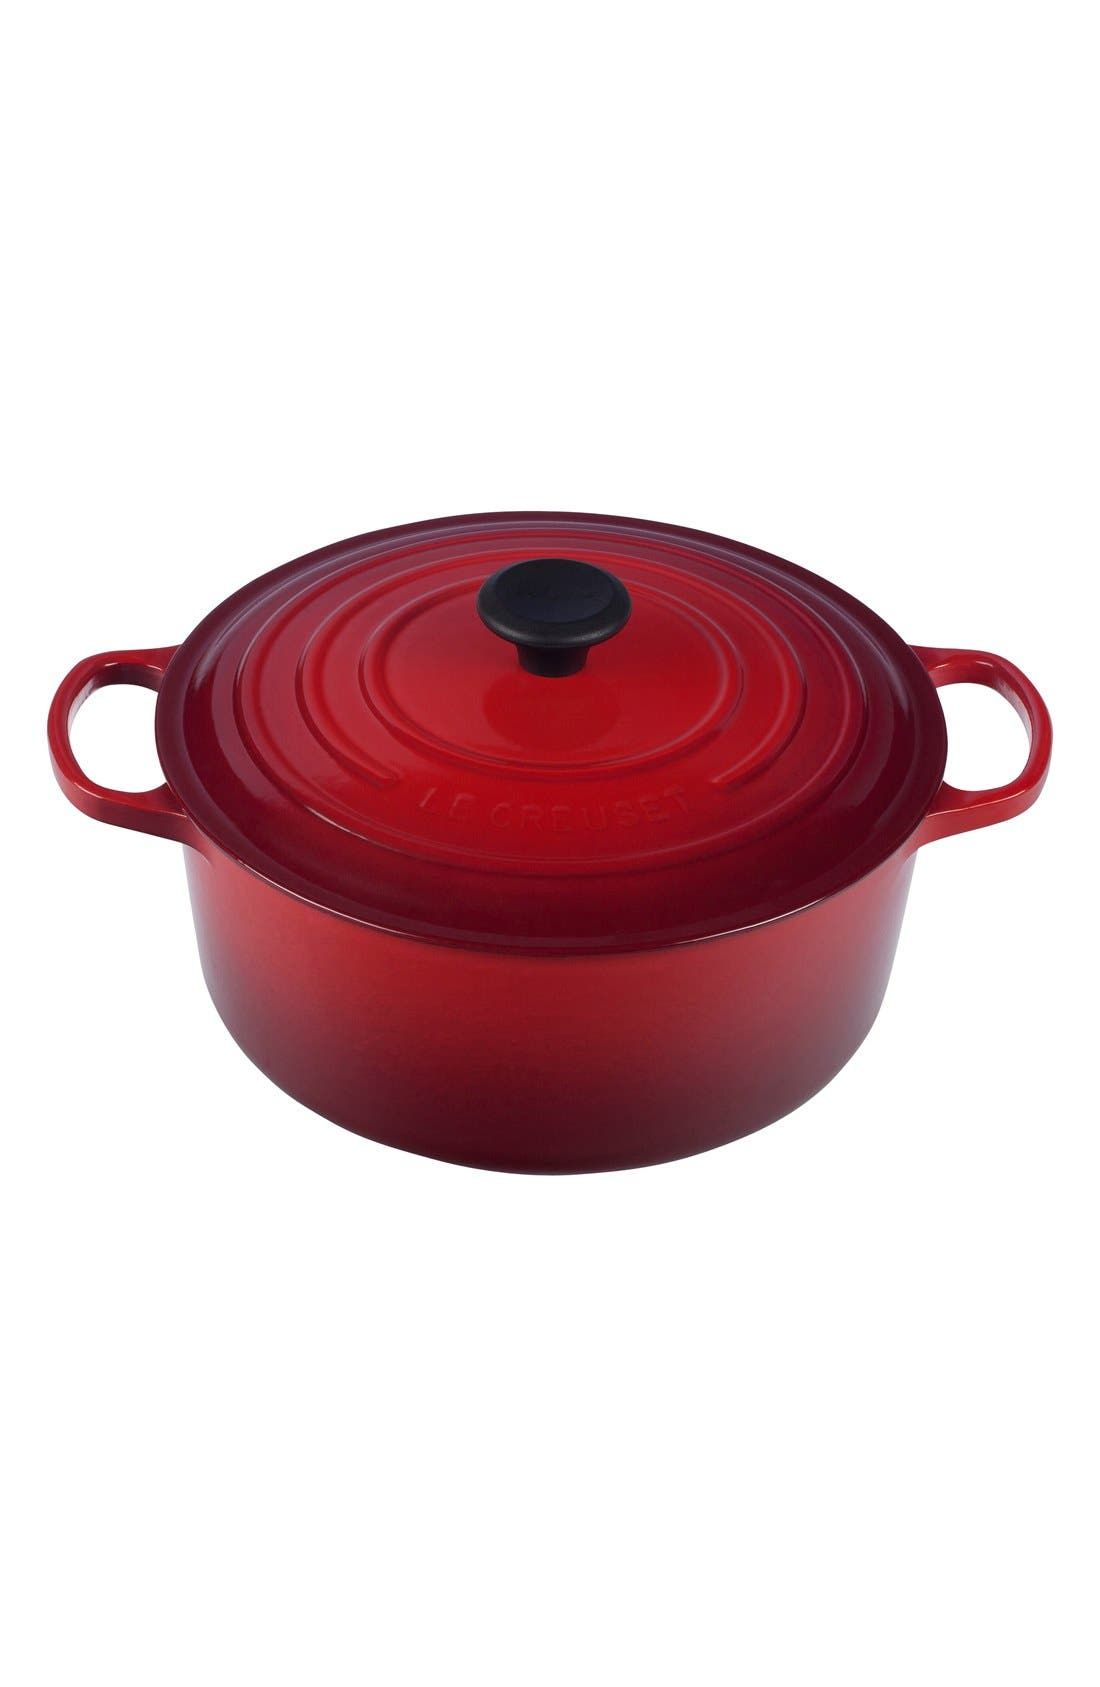 Signature 7 1/4 Quart Round Enamel Cast Iron French/Dutch Oven,                             Main thumbnail 1, color,                             Cherry